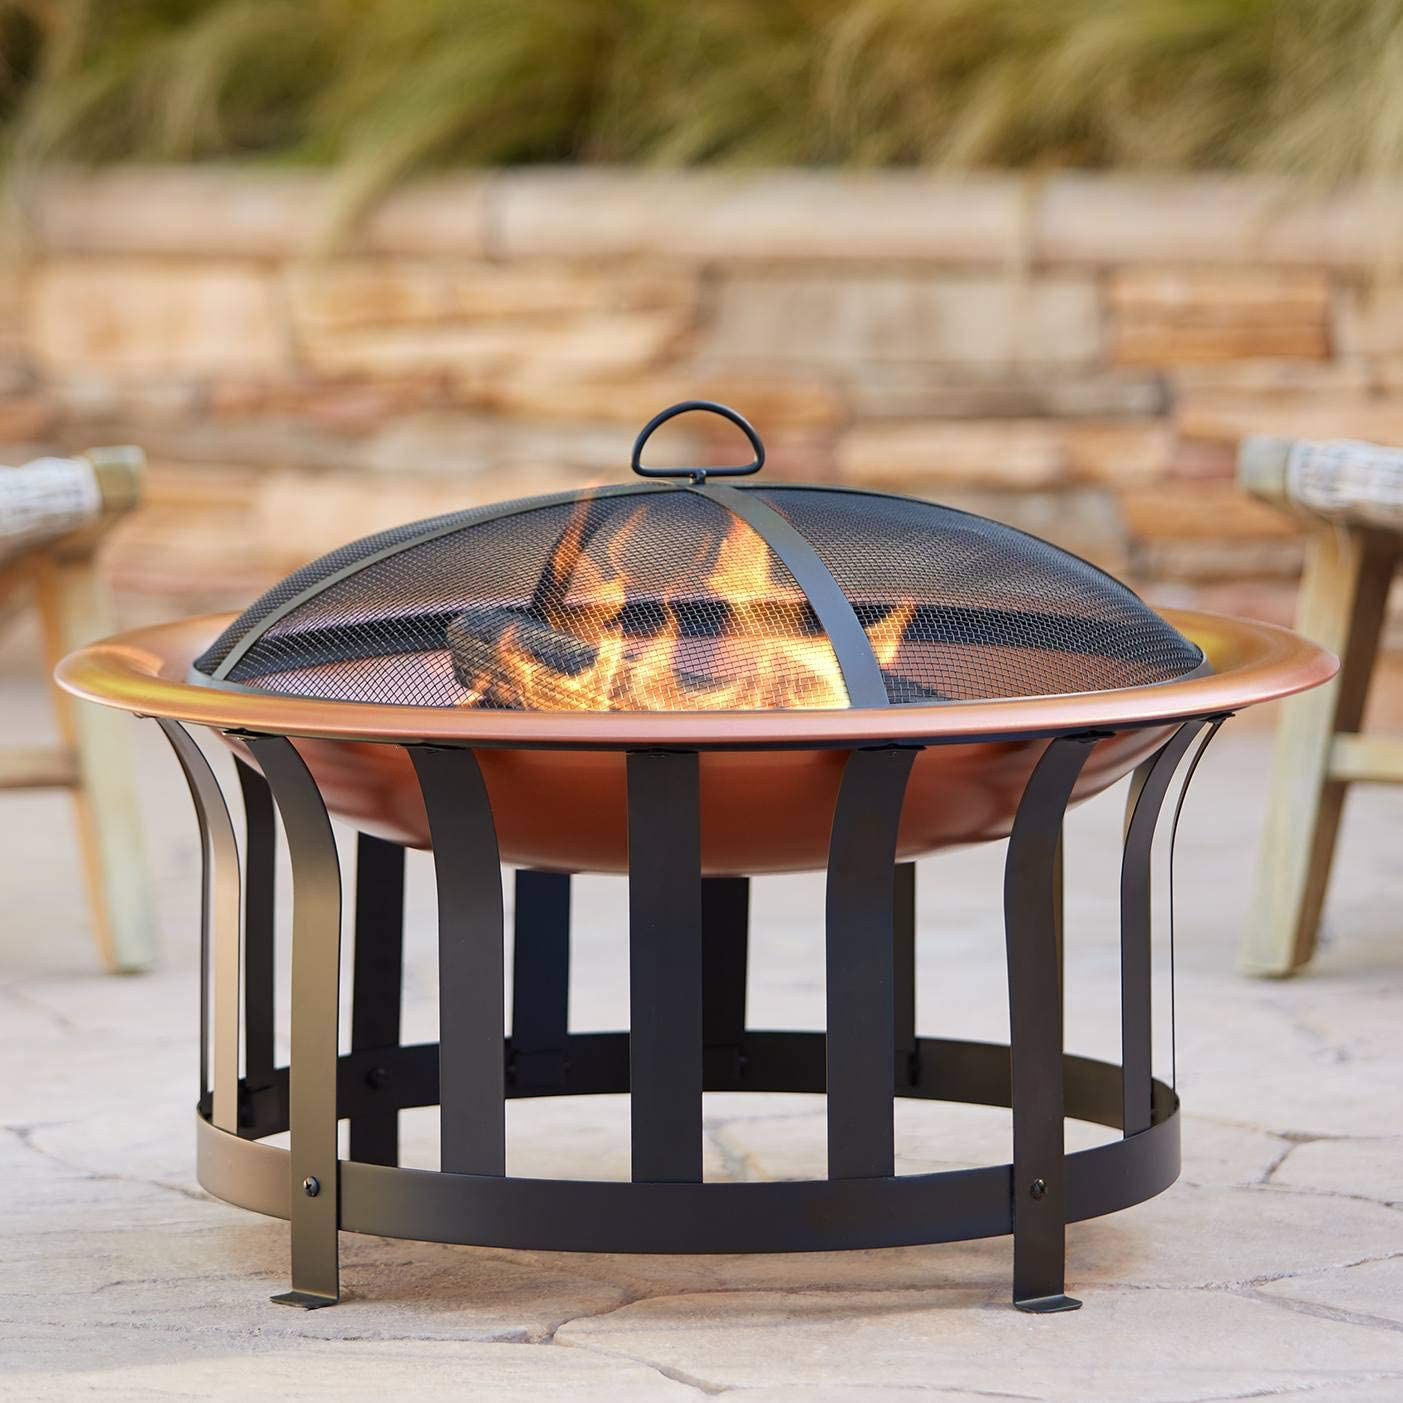 John Timberland Zurich Copper and Black Outdoor Fire Pit Round 30″ Steel Wood Burning